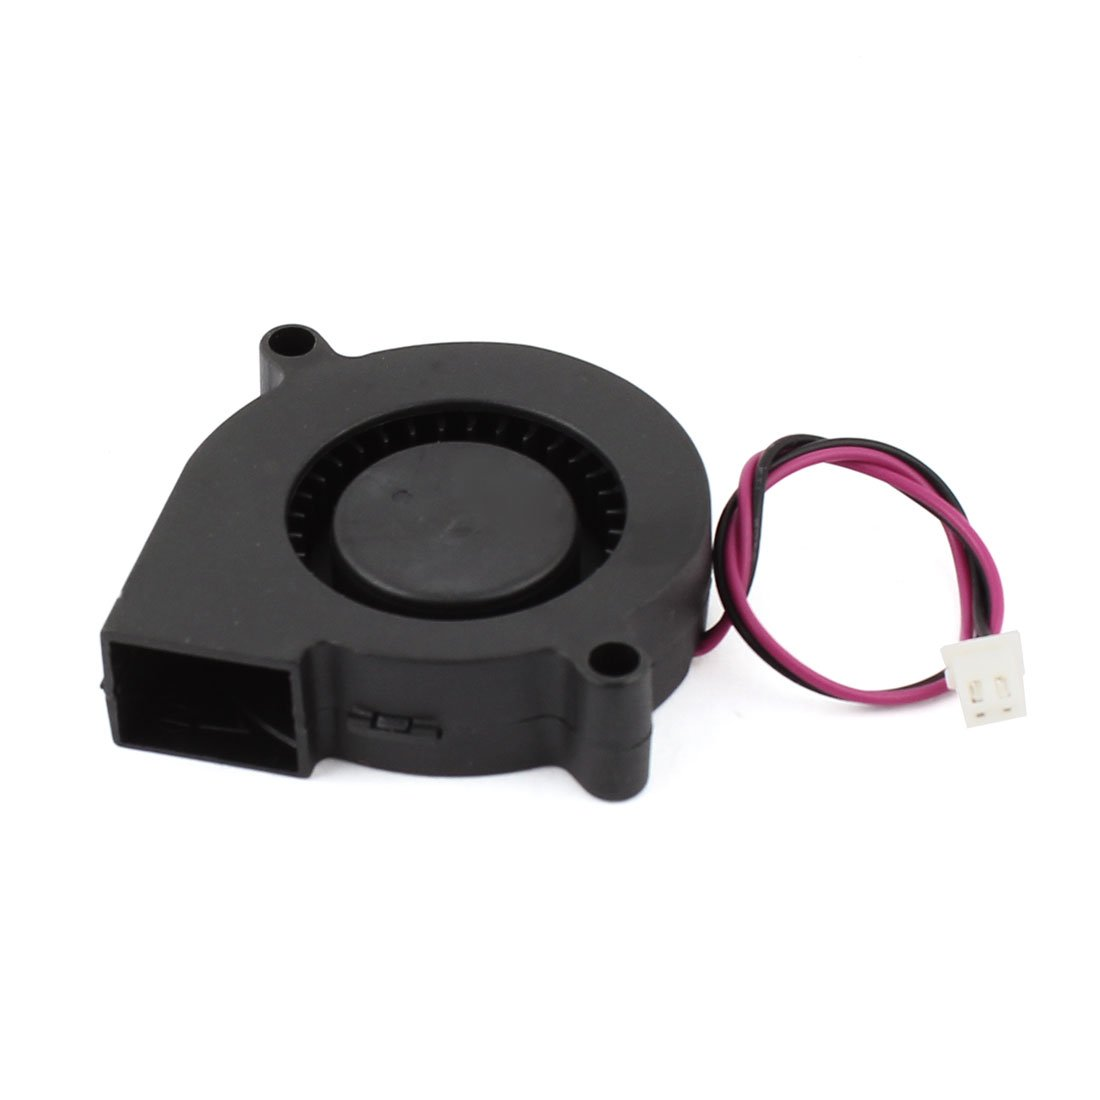 Uxcell a14112600ux0241 DC Brushless Sleeve-Bearing Cooling Blower ...